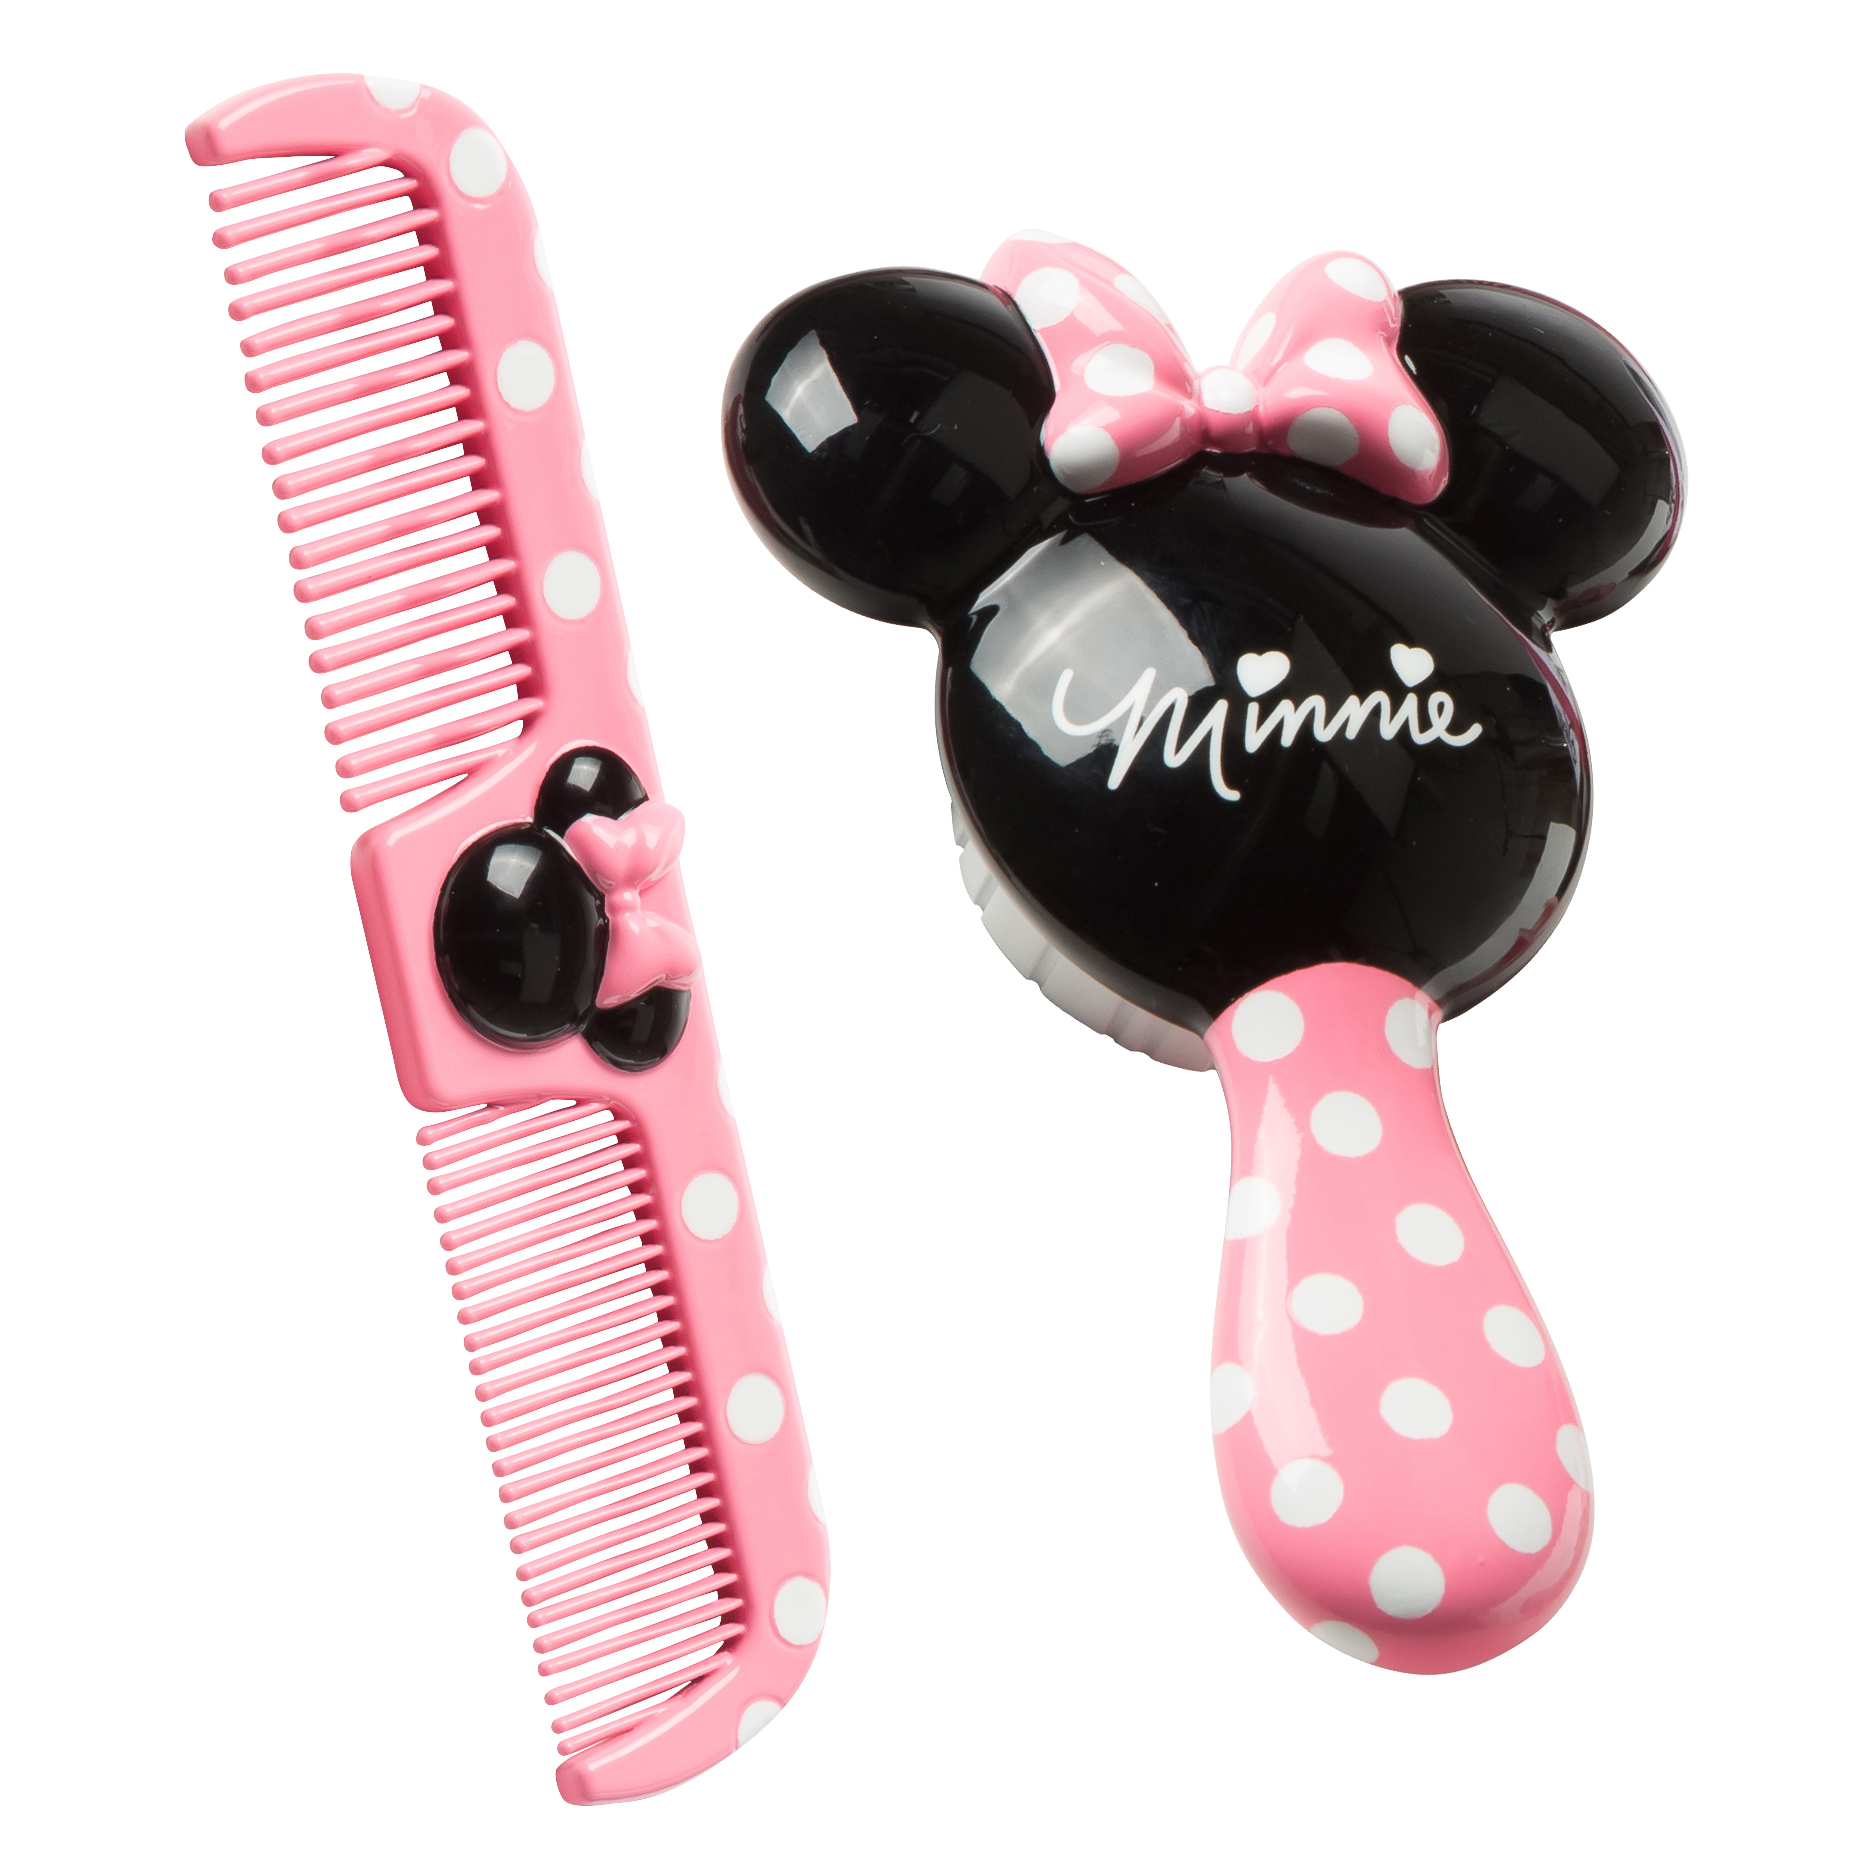 Disney Baby Minnie Brush & Comb Set with Easy-Grip Handle, Minnie